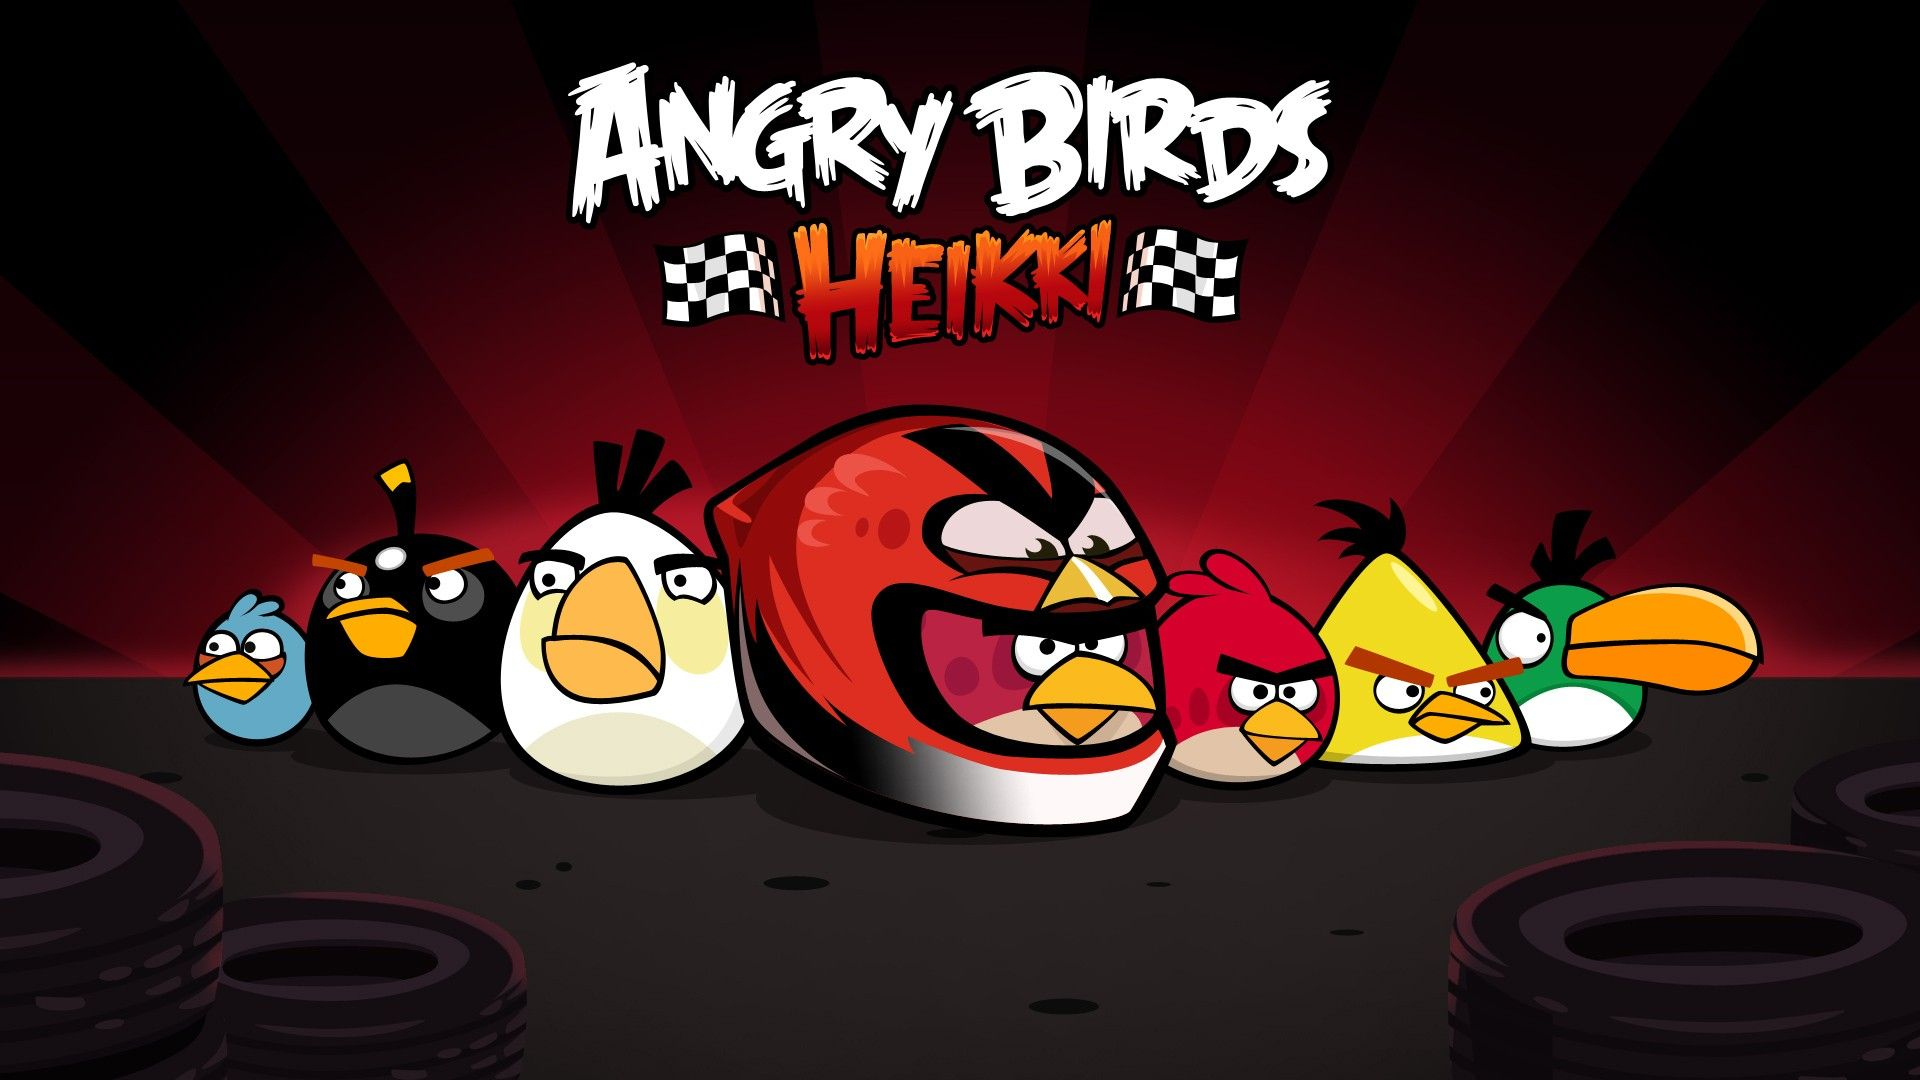 angry birds heikki images hd wallpaper of game